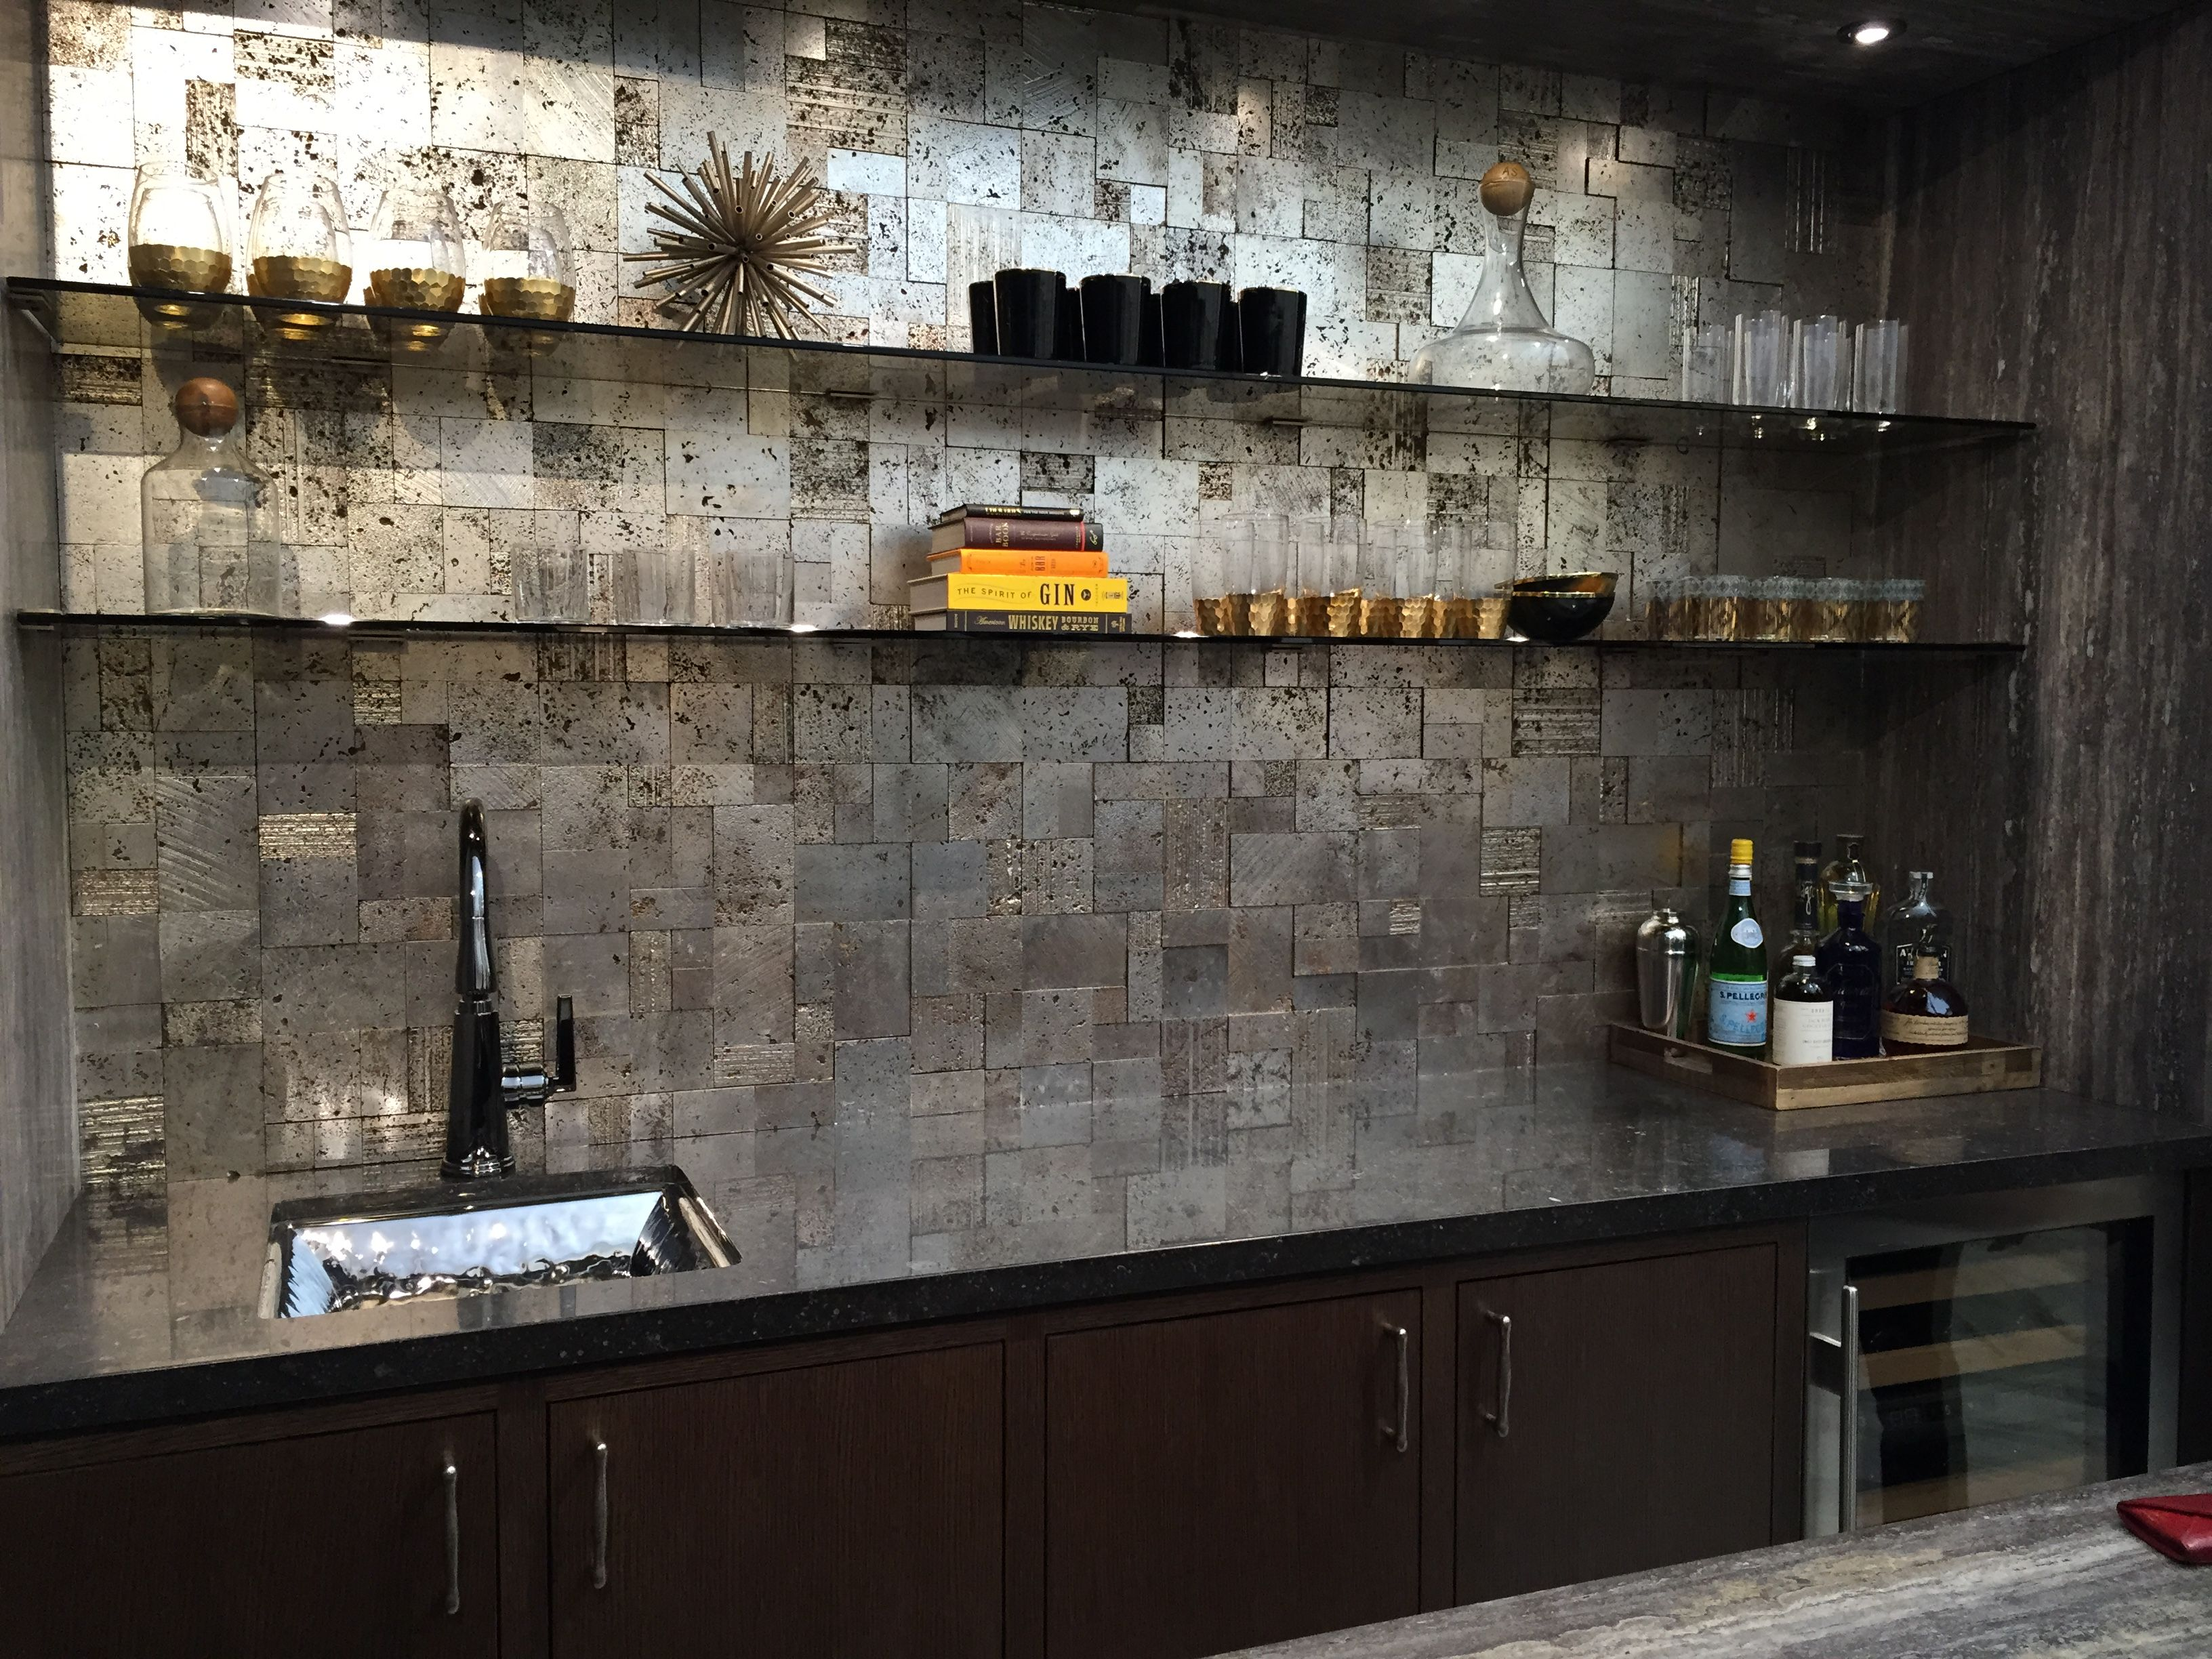 - The Most Beautiful Bar! The Backsplash Tile Is Silver Leaf